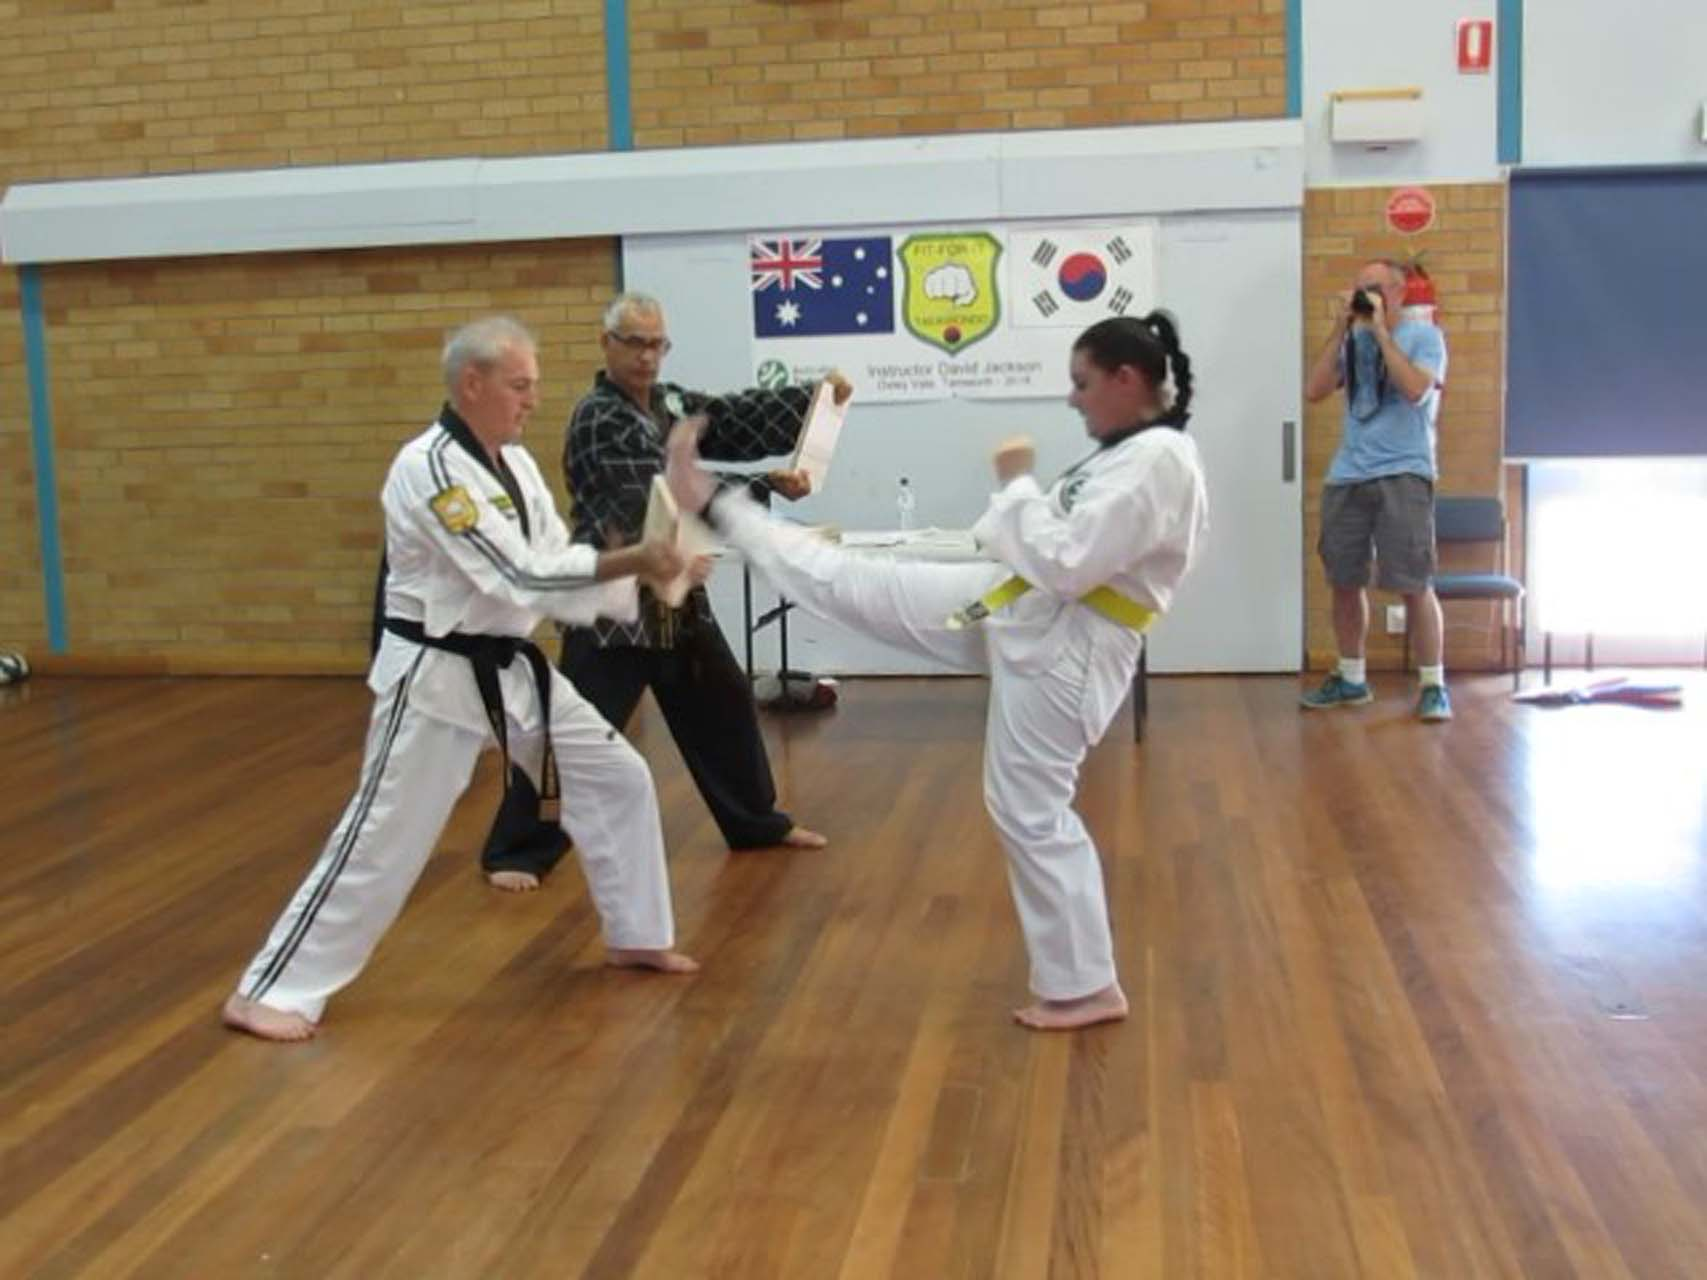 A young female practices kicking during a taekwondo class in Tamworth.